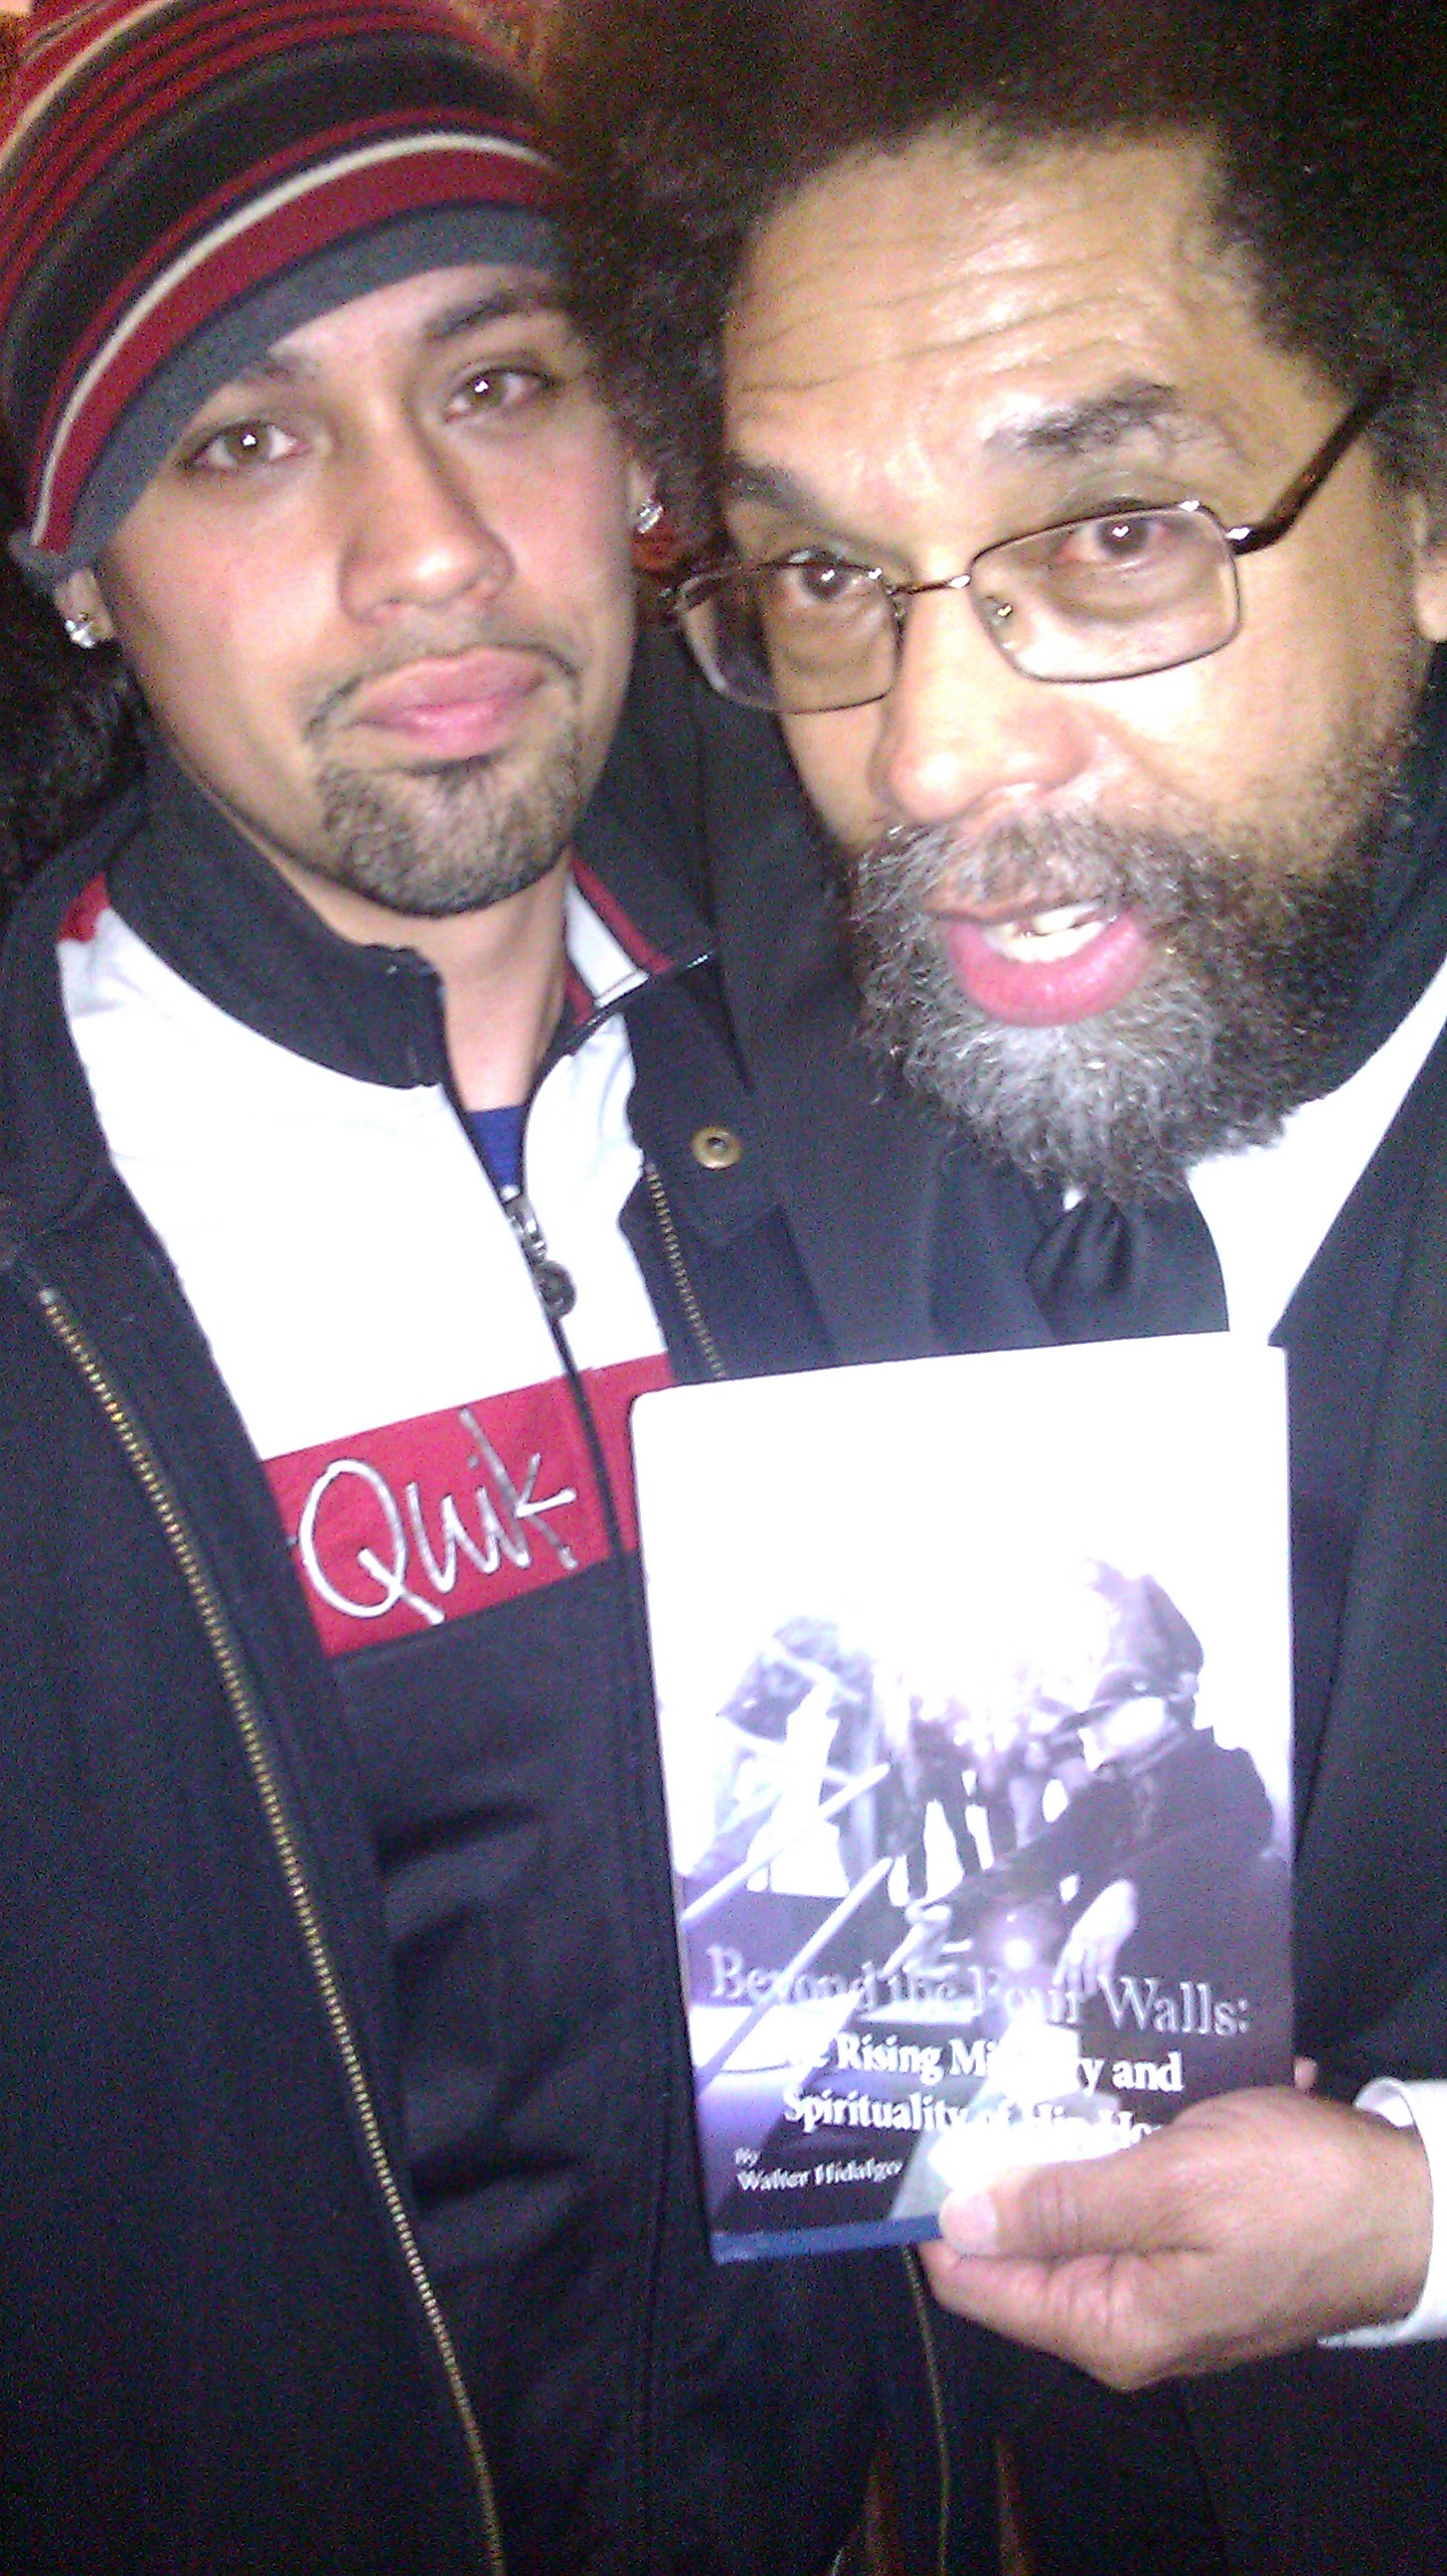 Dr. Cornel West takes a picture with Walter Hidalgo after receiving a signed copy of his book with much enthusiasm!